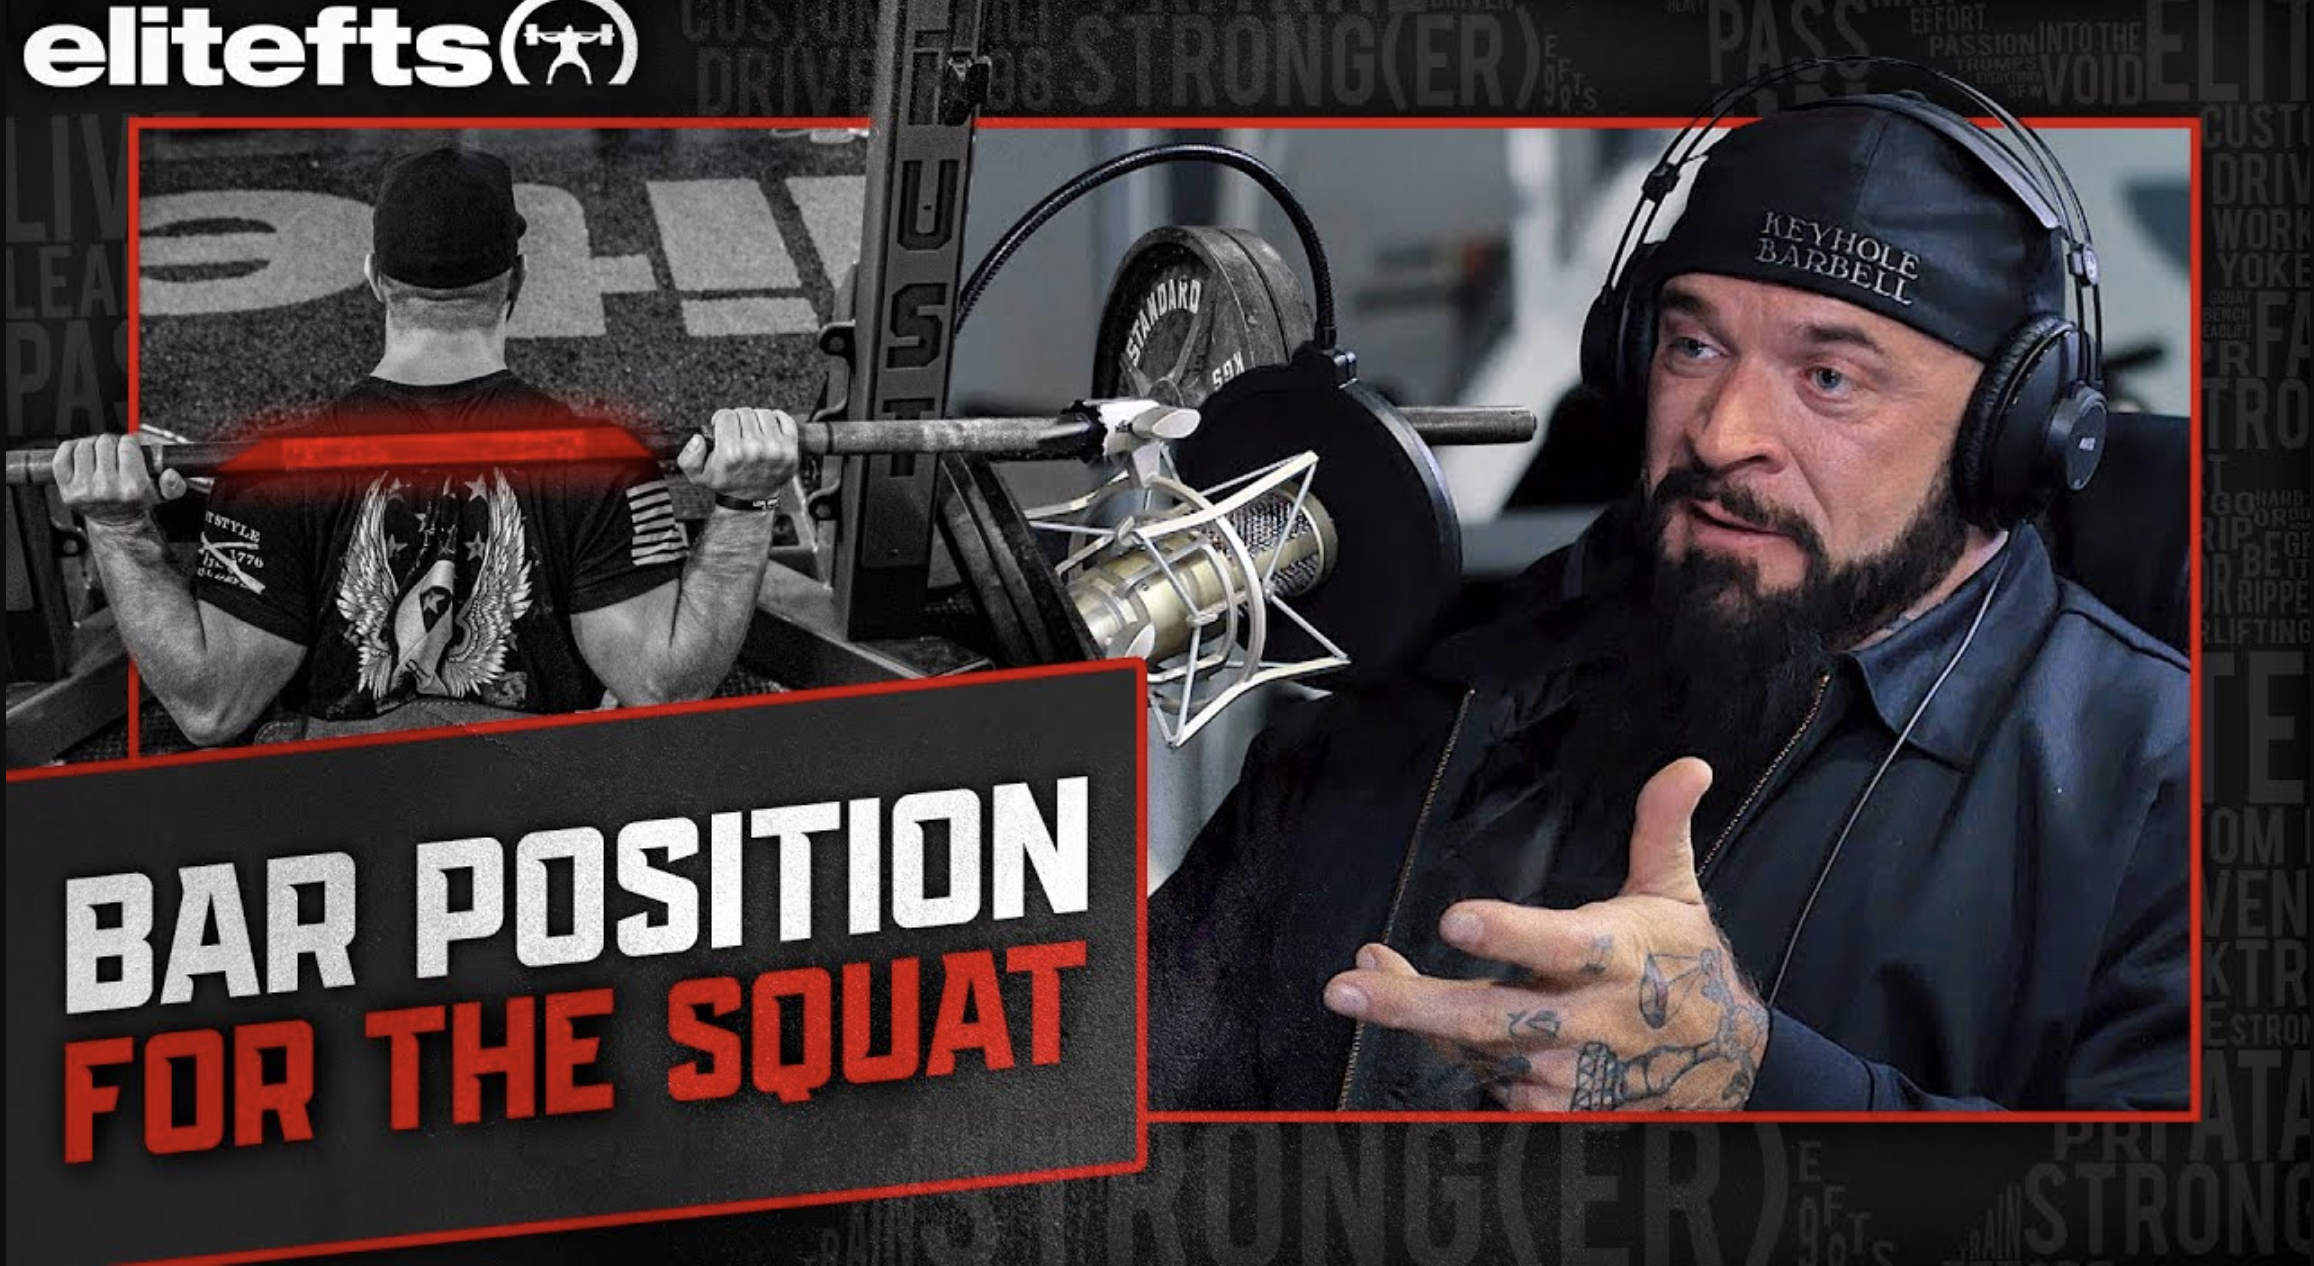 LISTEN: Table Talk Podcast Clip — Swede Burns & Dave Tate Discuss Bar Position For The Squat